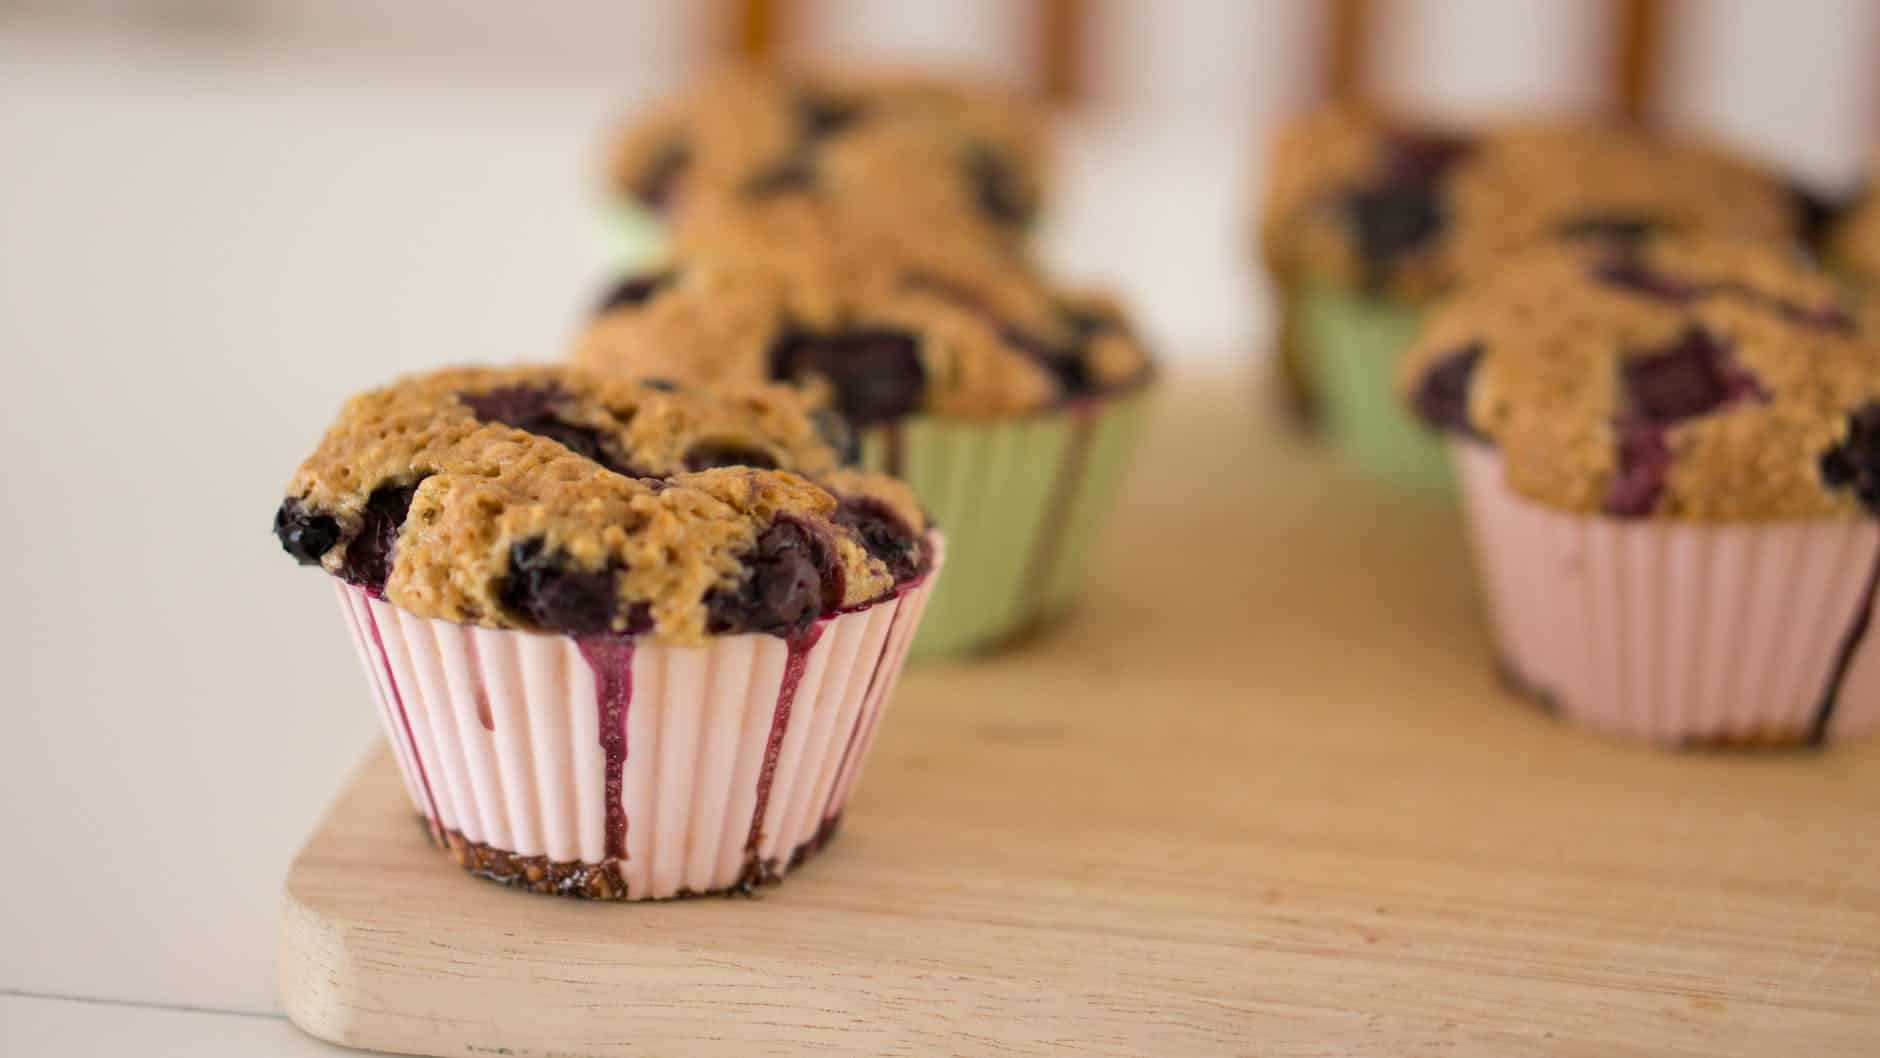 Easy Muffin Recipes For a Party